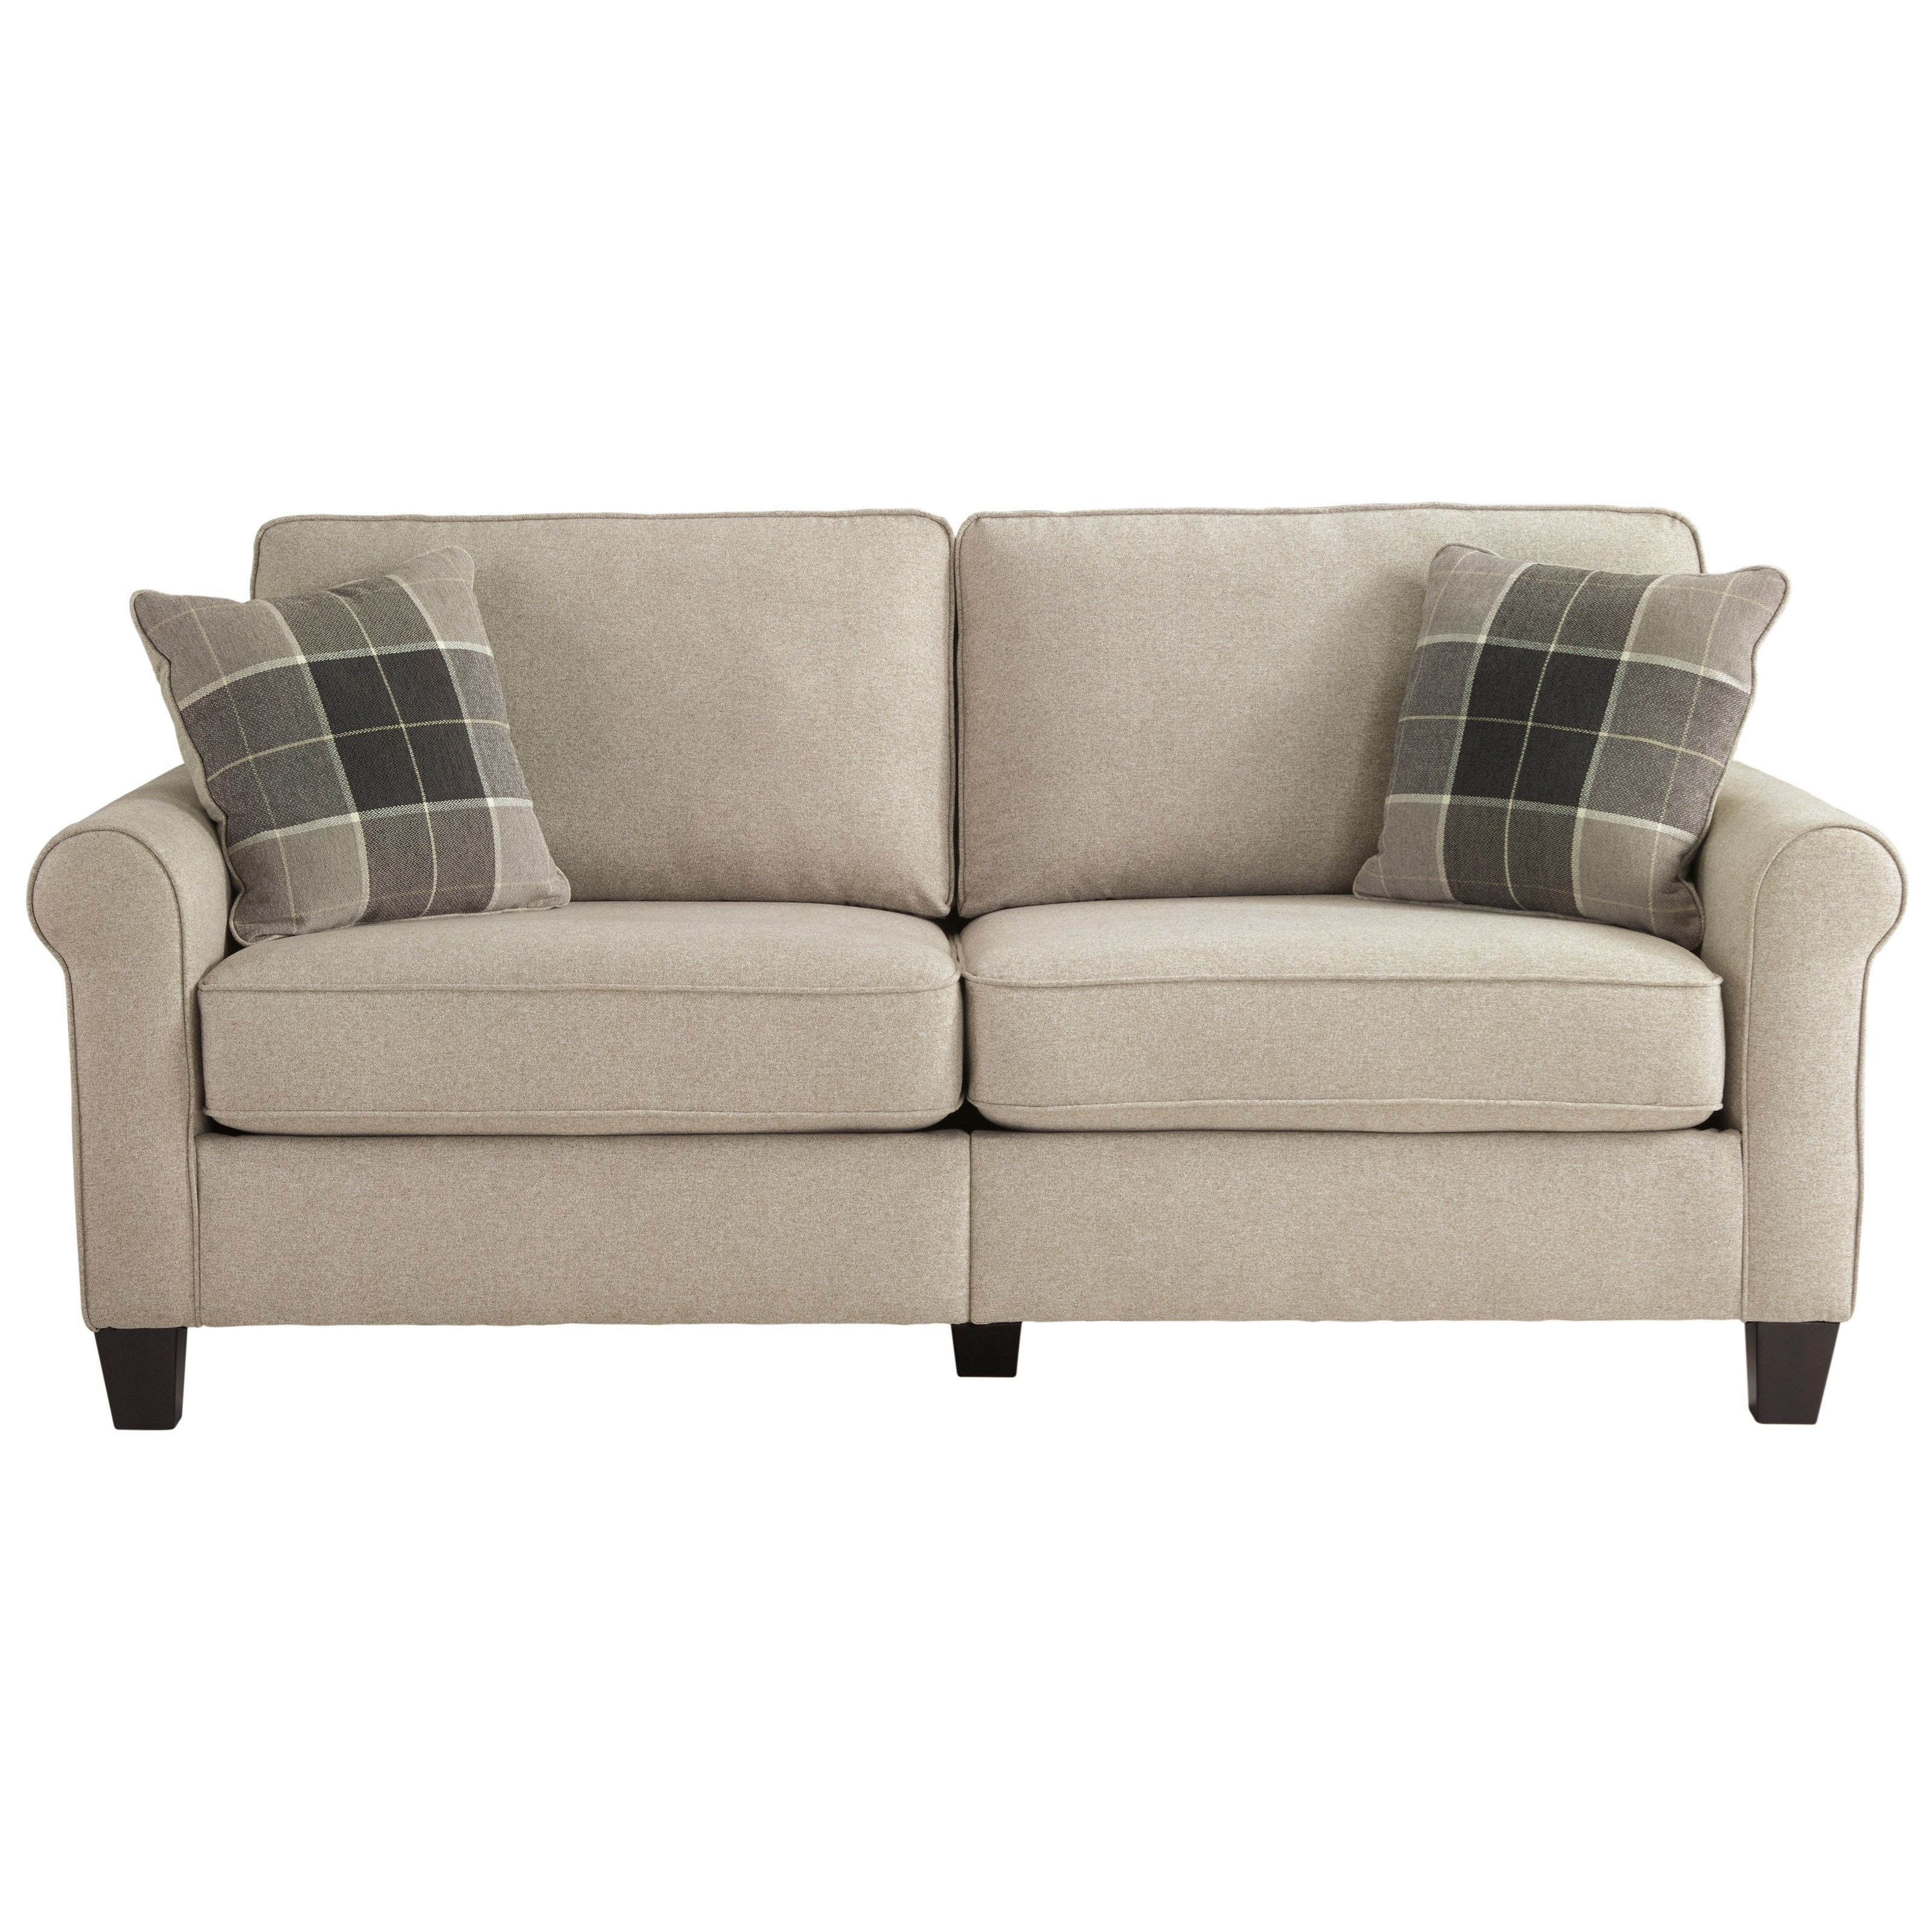 Lingen Sofa by Signature Design by Ashley at Lapeer Furniture & Mattress Center